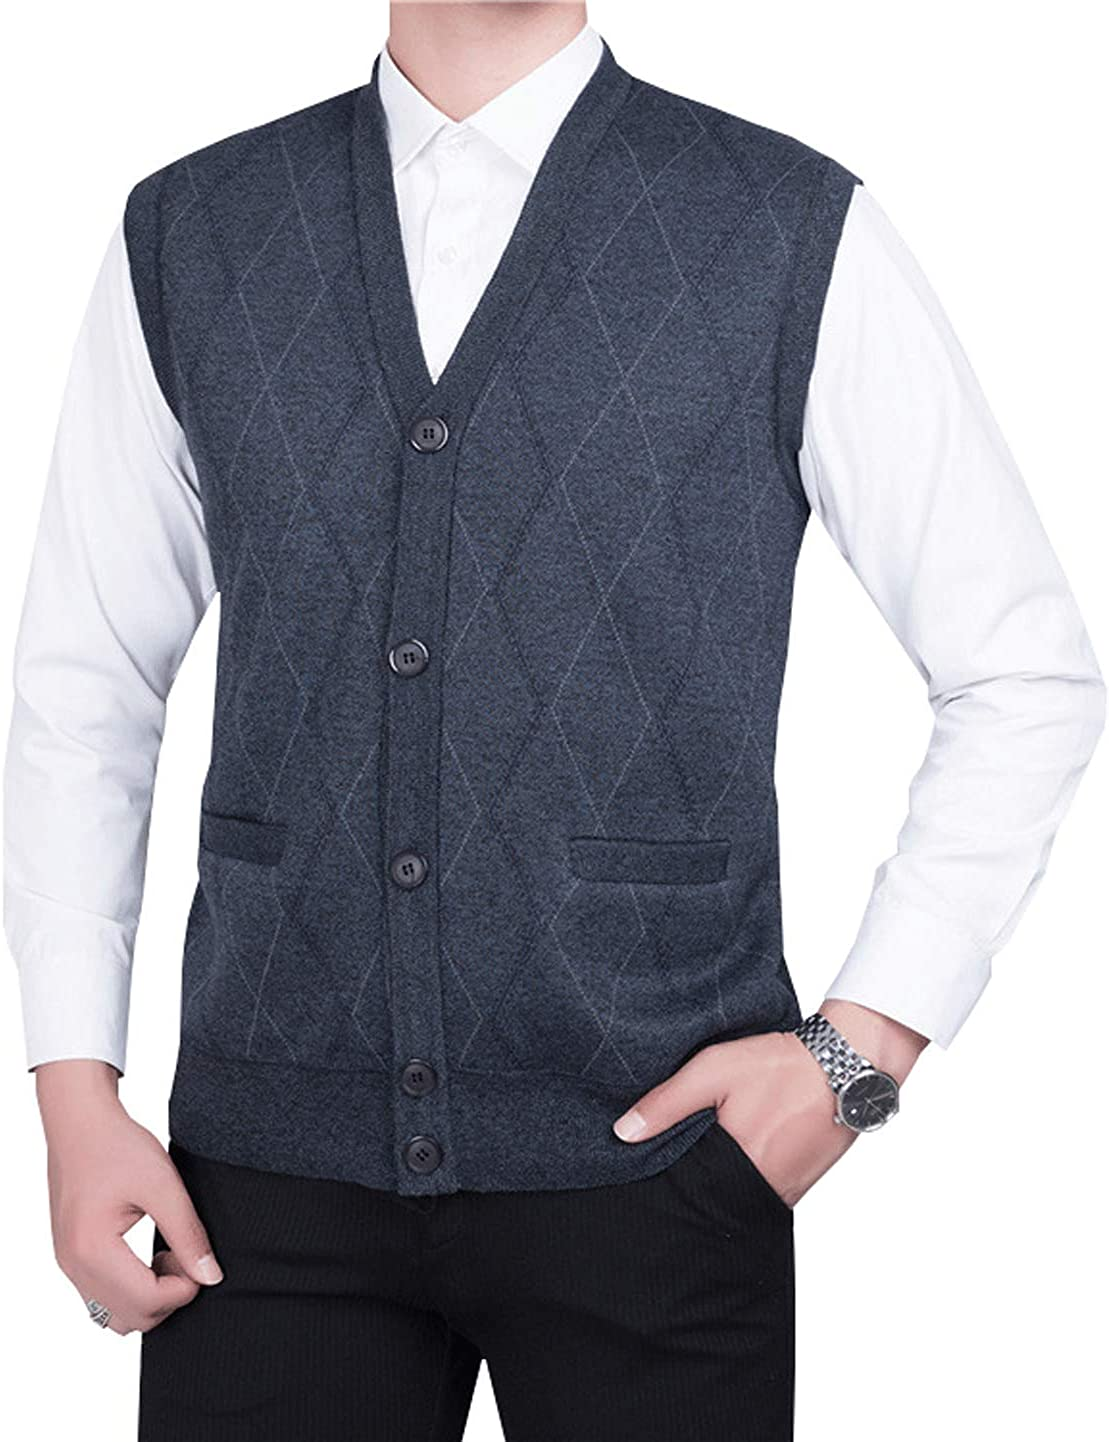 Washington Mall Our shop OFFers the best service HOW'ON Men's V-Neck Cardigan Sweater with Front Vest Button